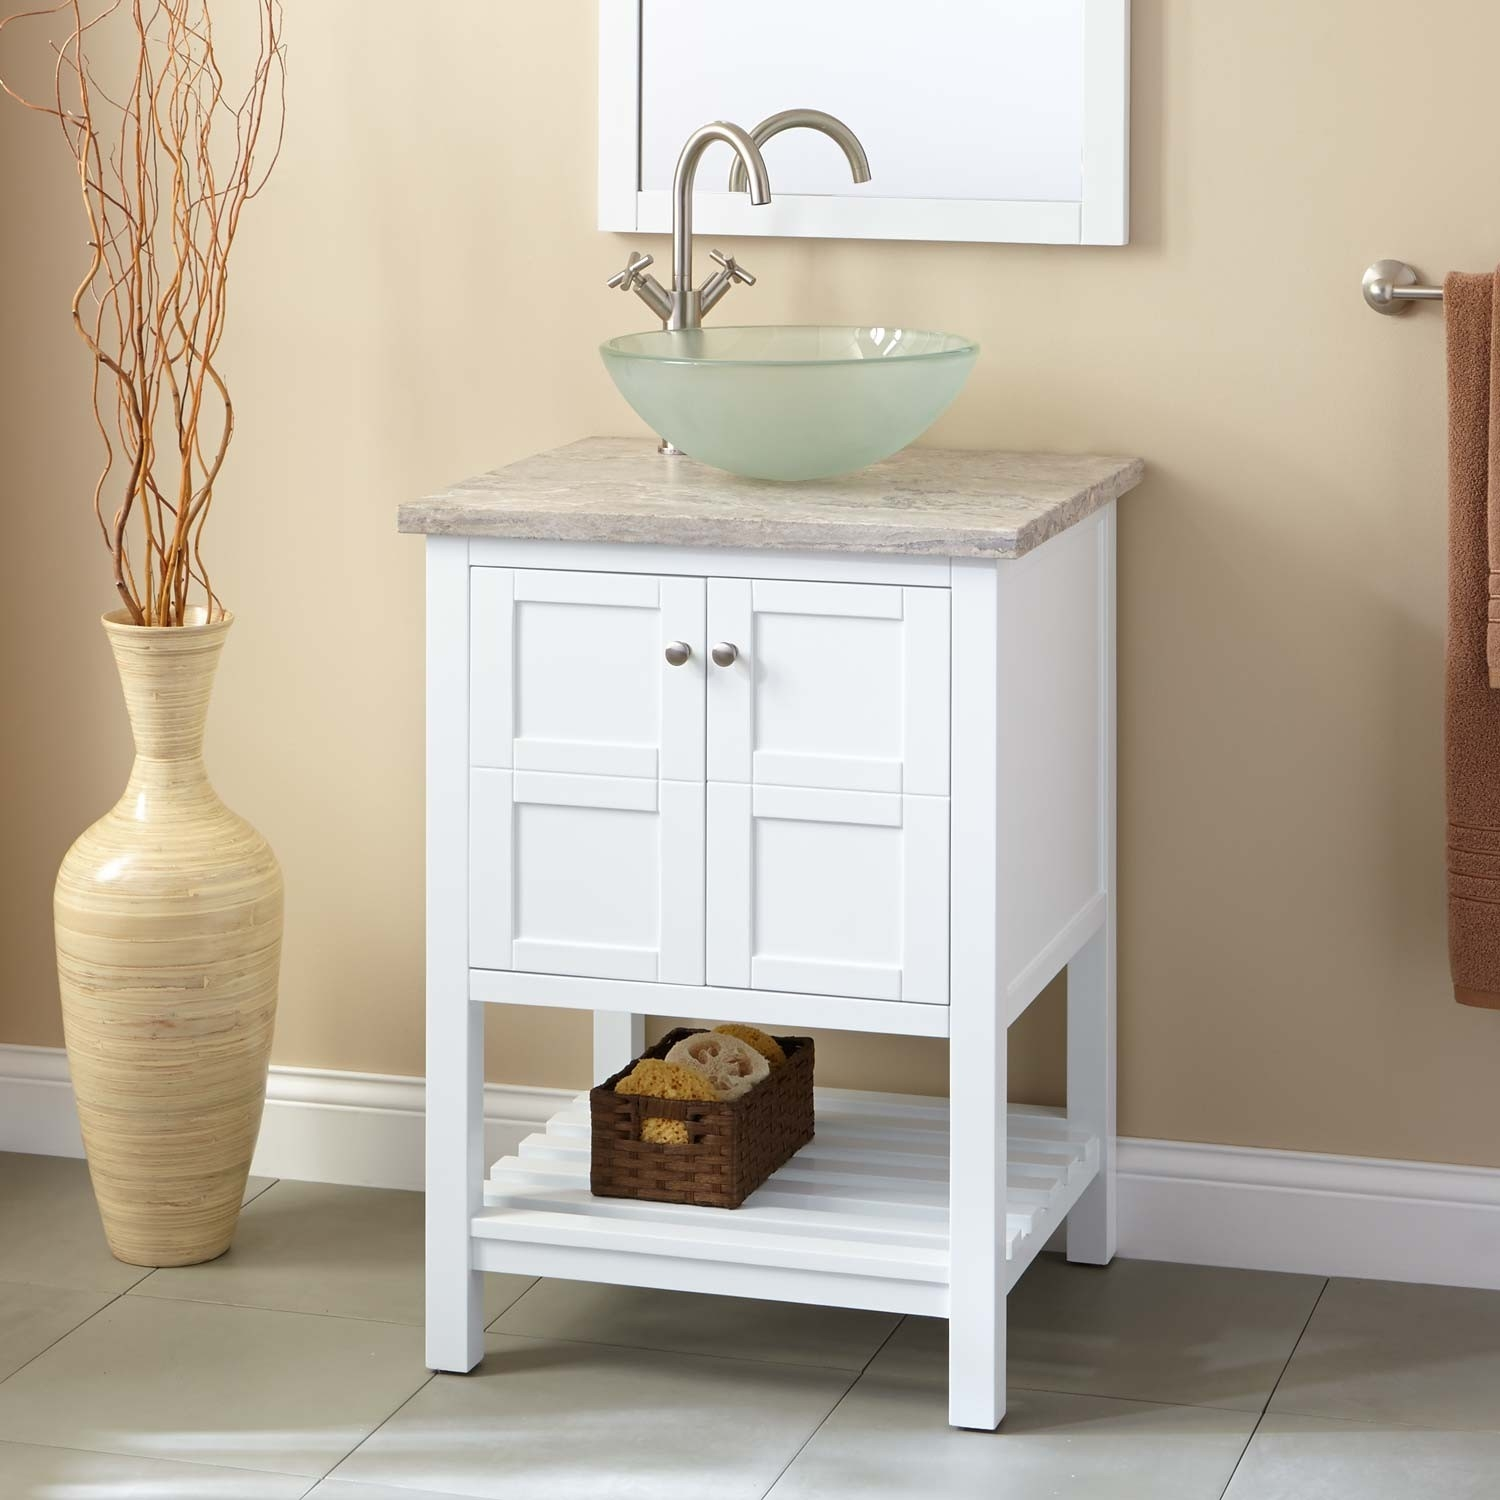 Permalink to Closeout Bathroom Vanities With Sink